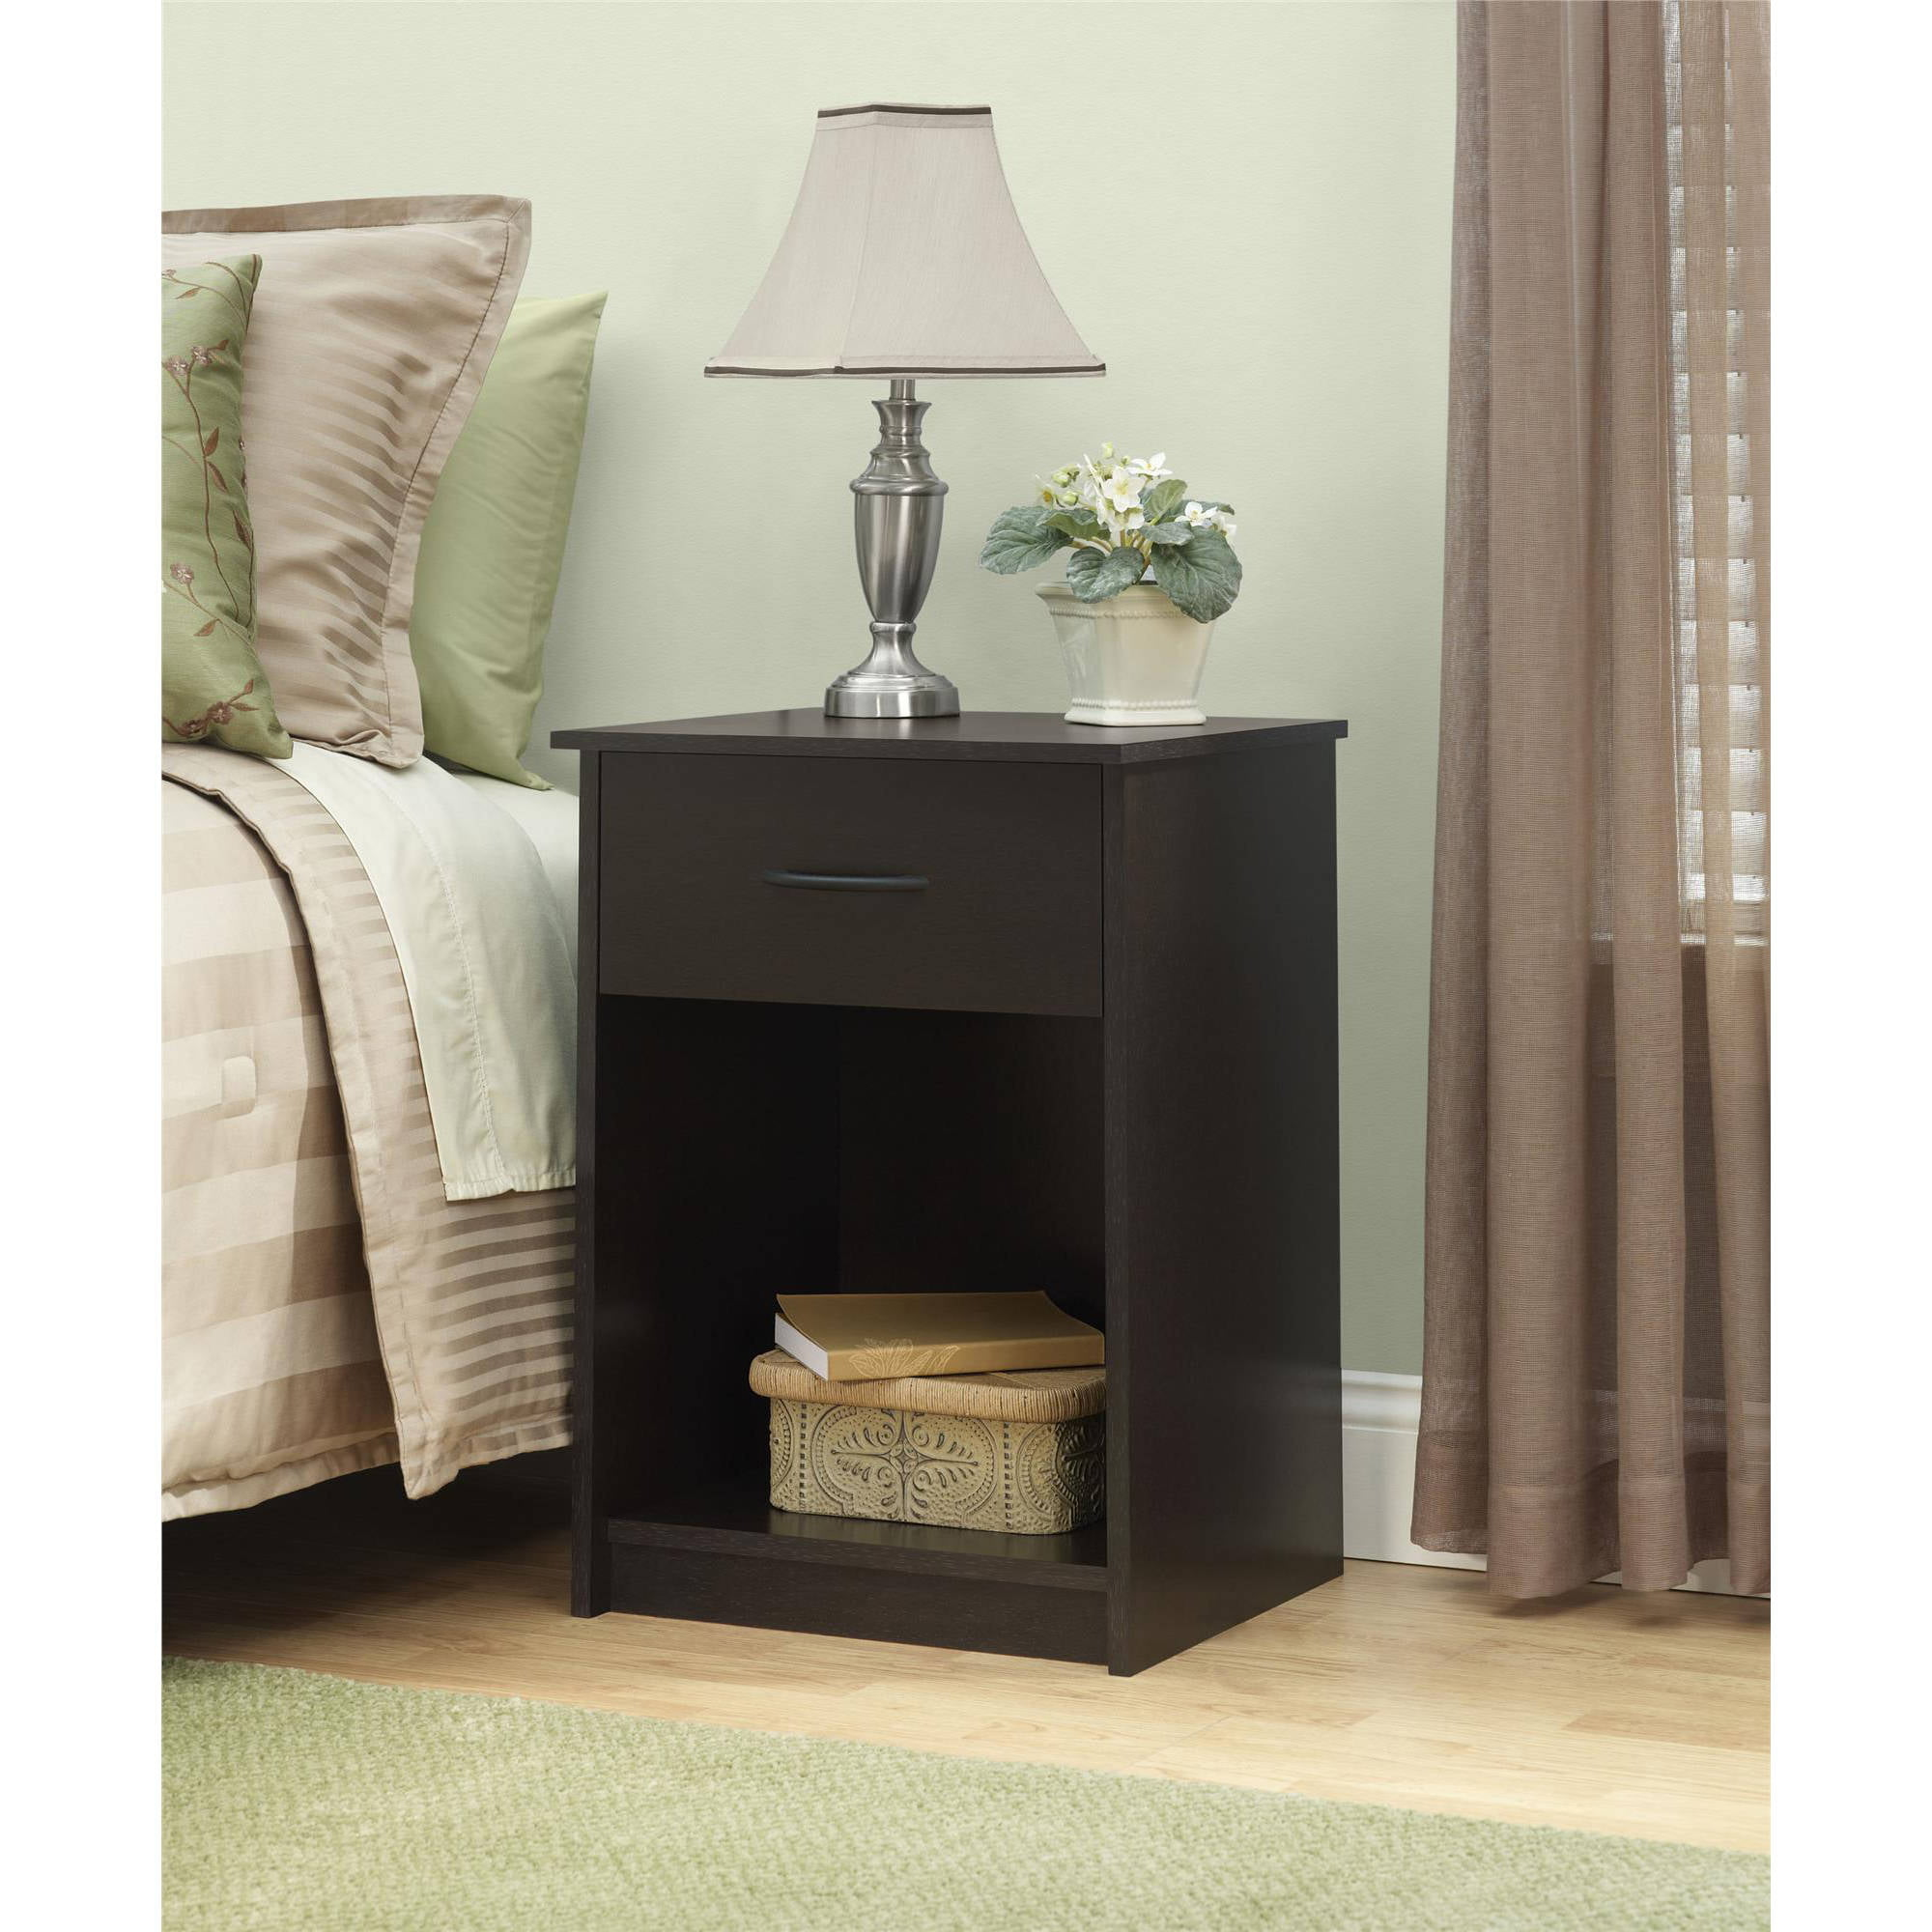 Attirant Mainstays 1 Drawer Nightstand / End Table, Black Ebony Ash   Walmart.com